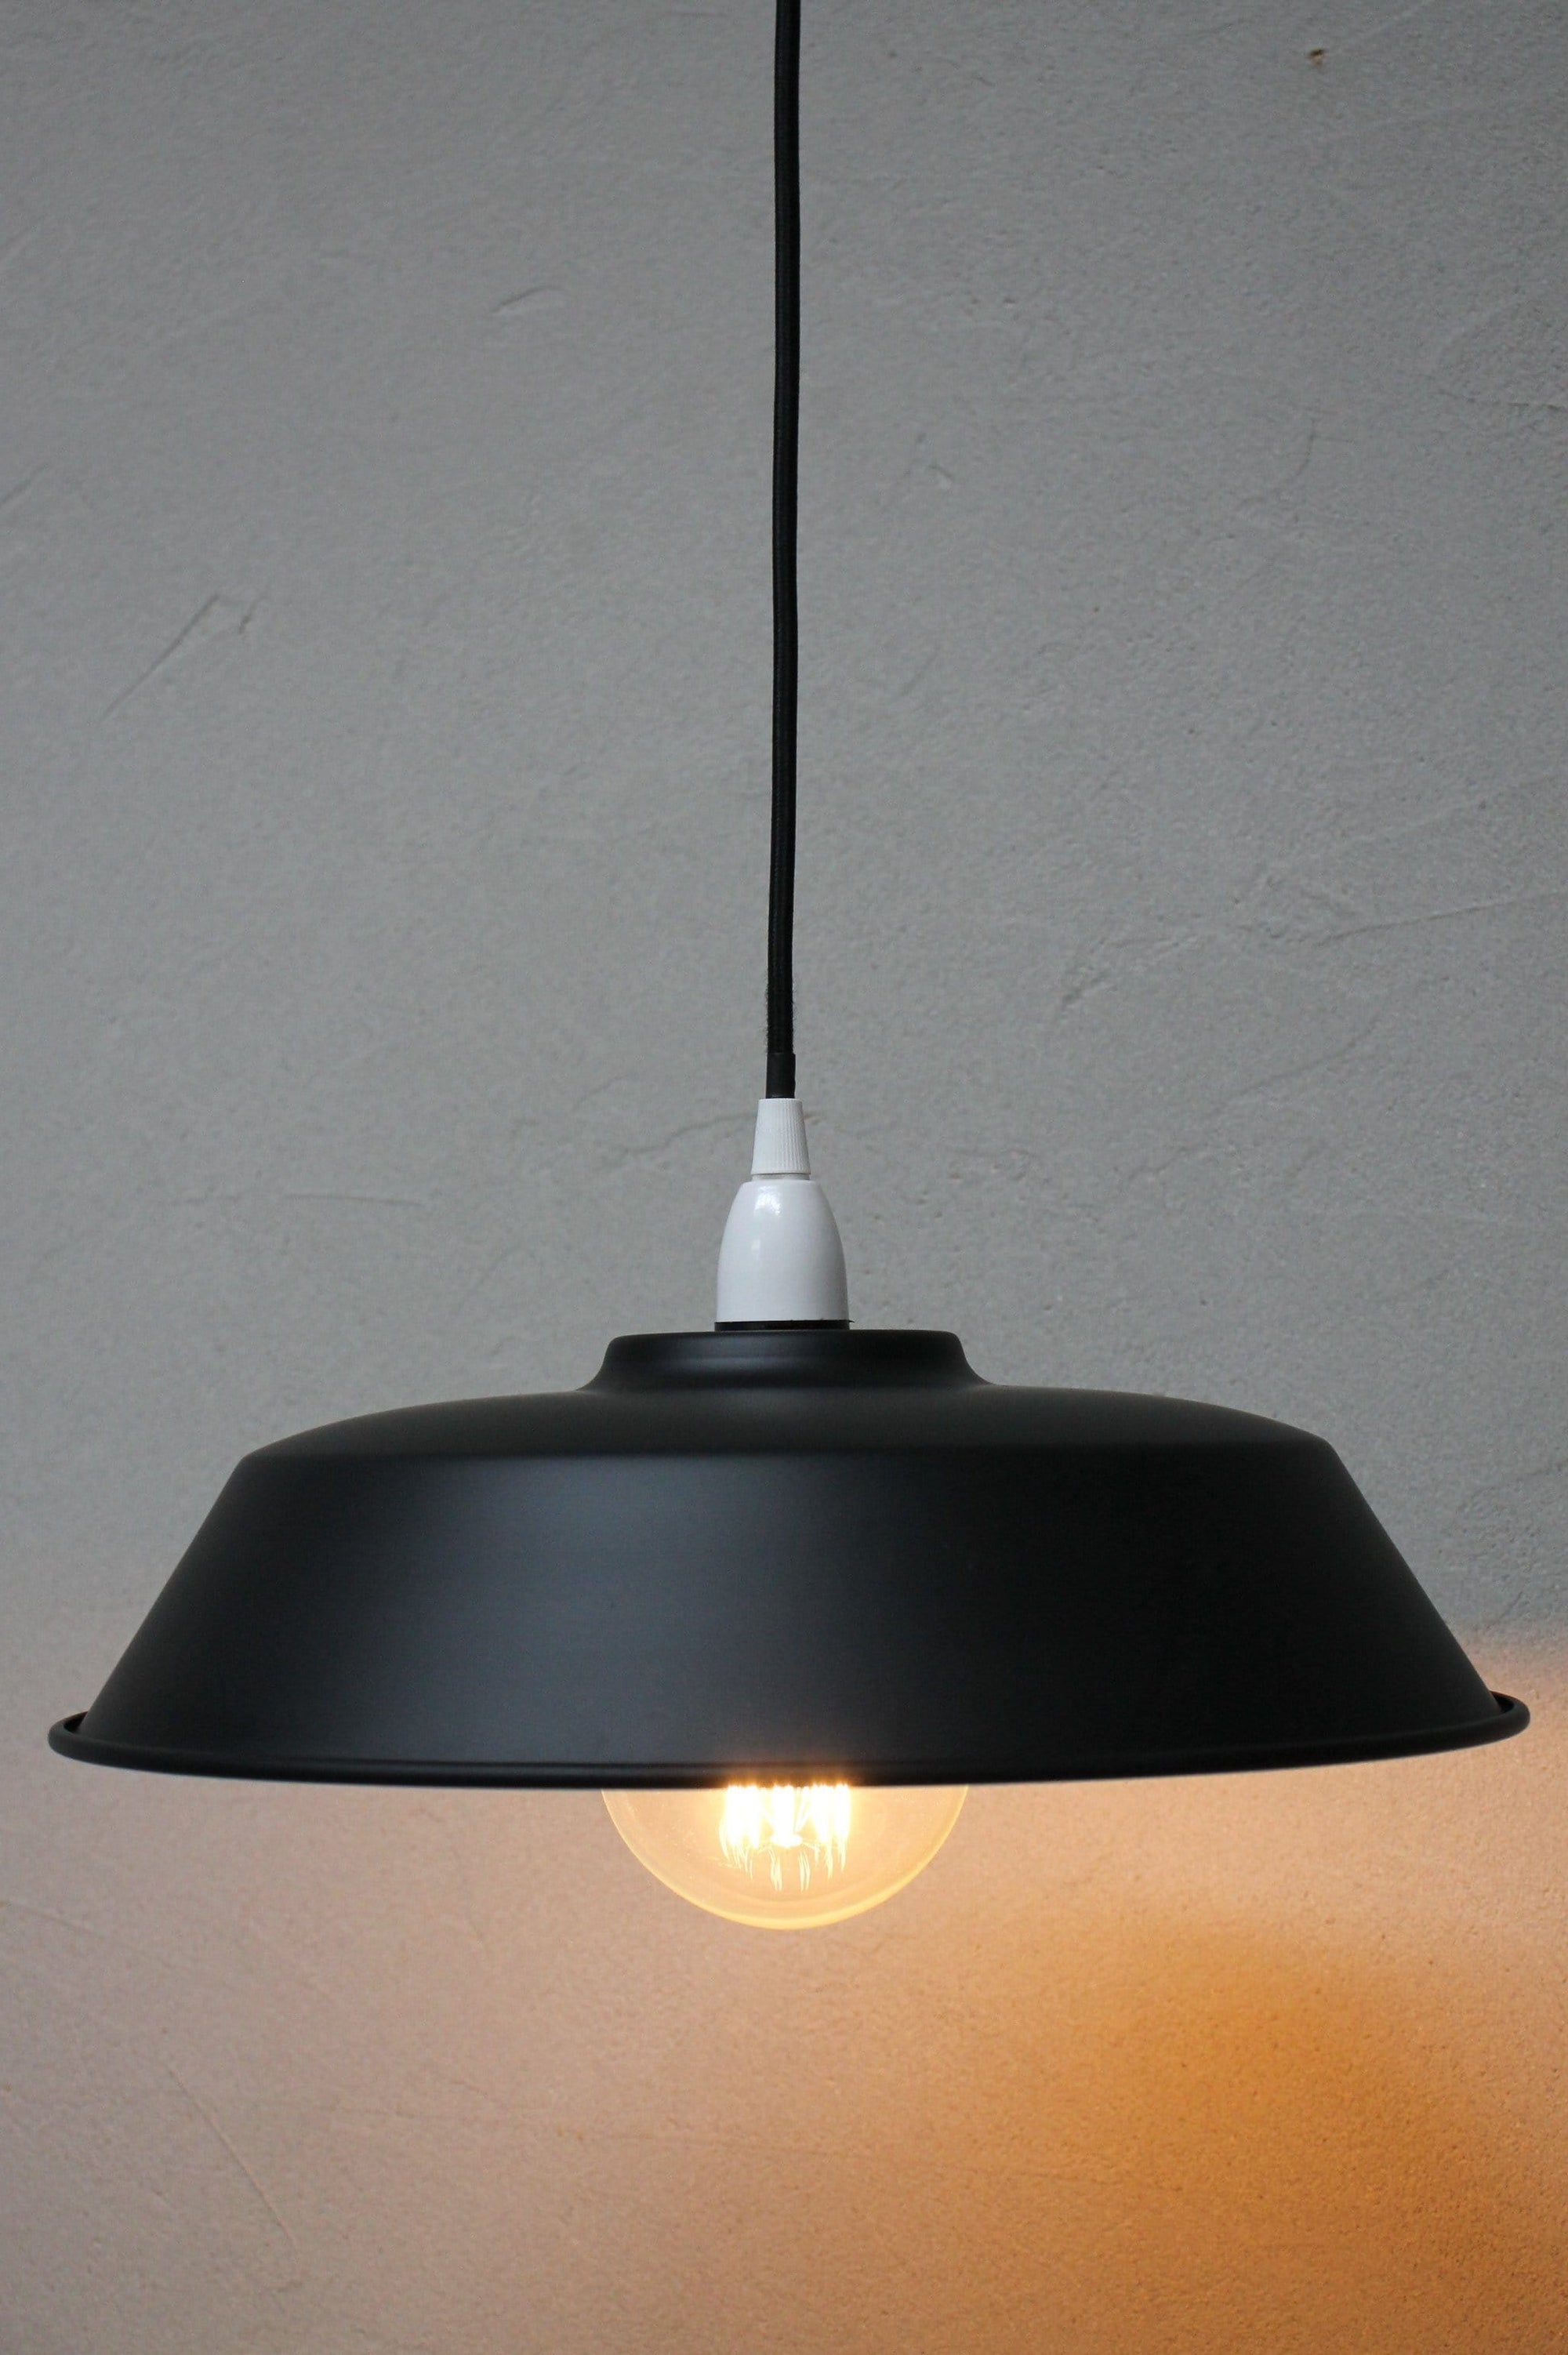 Modern industrial pendant light. Matt black with white features pendant light